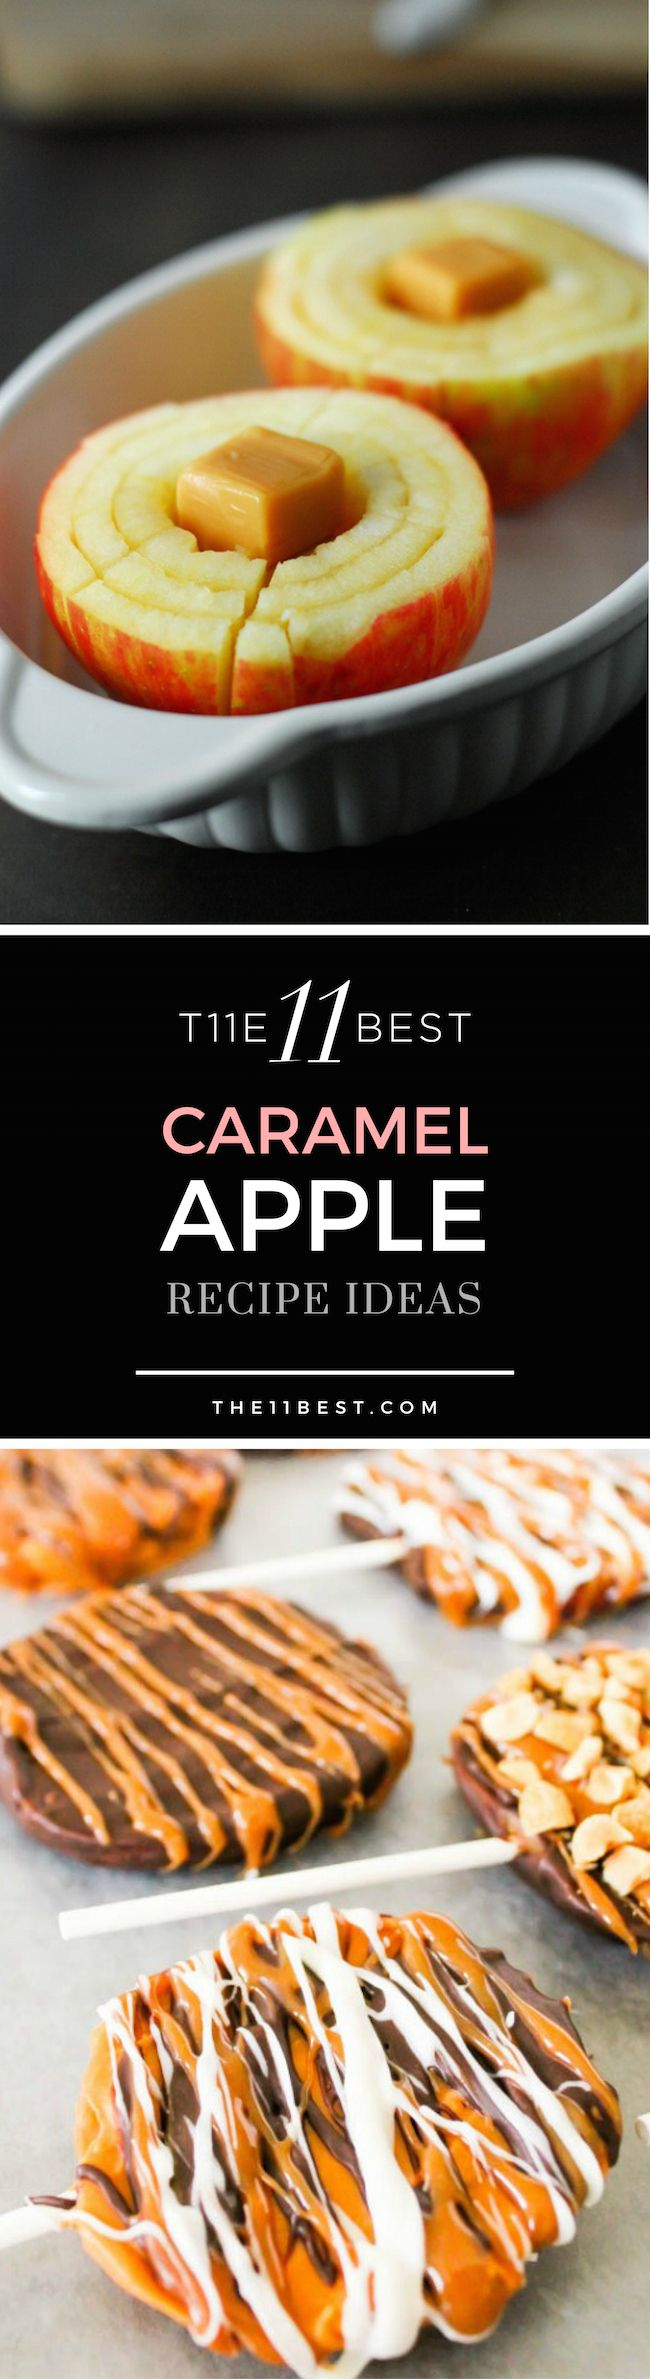 The 11 Best Caramel Apple Recipes